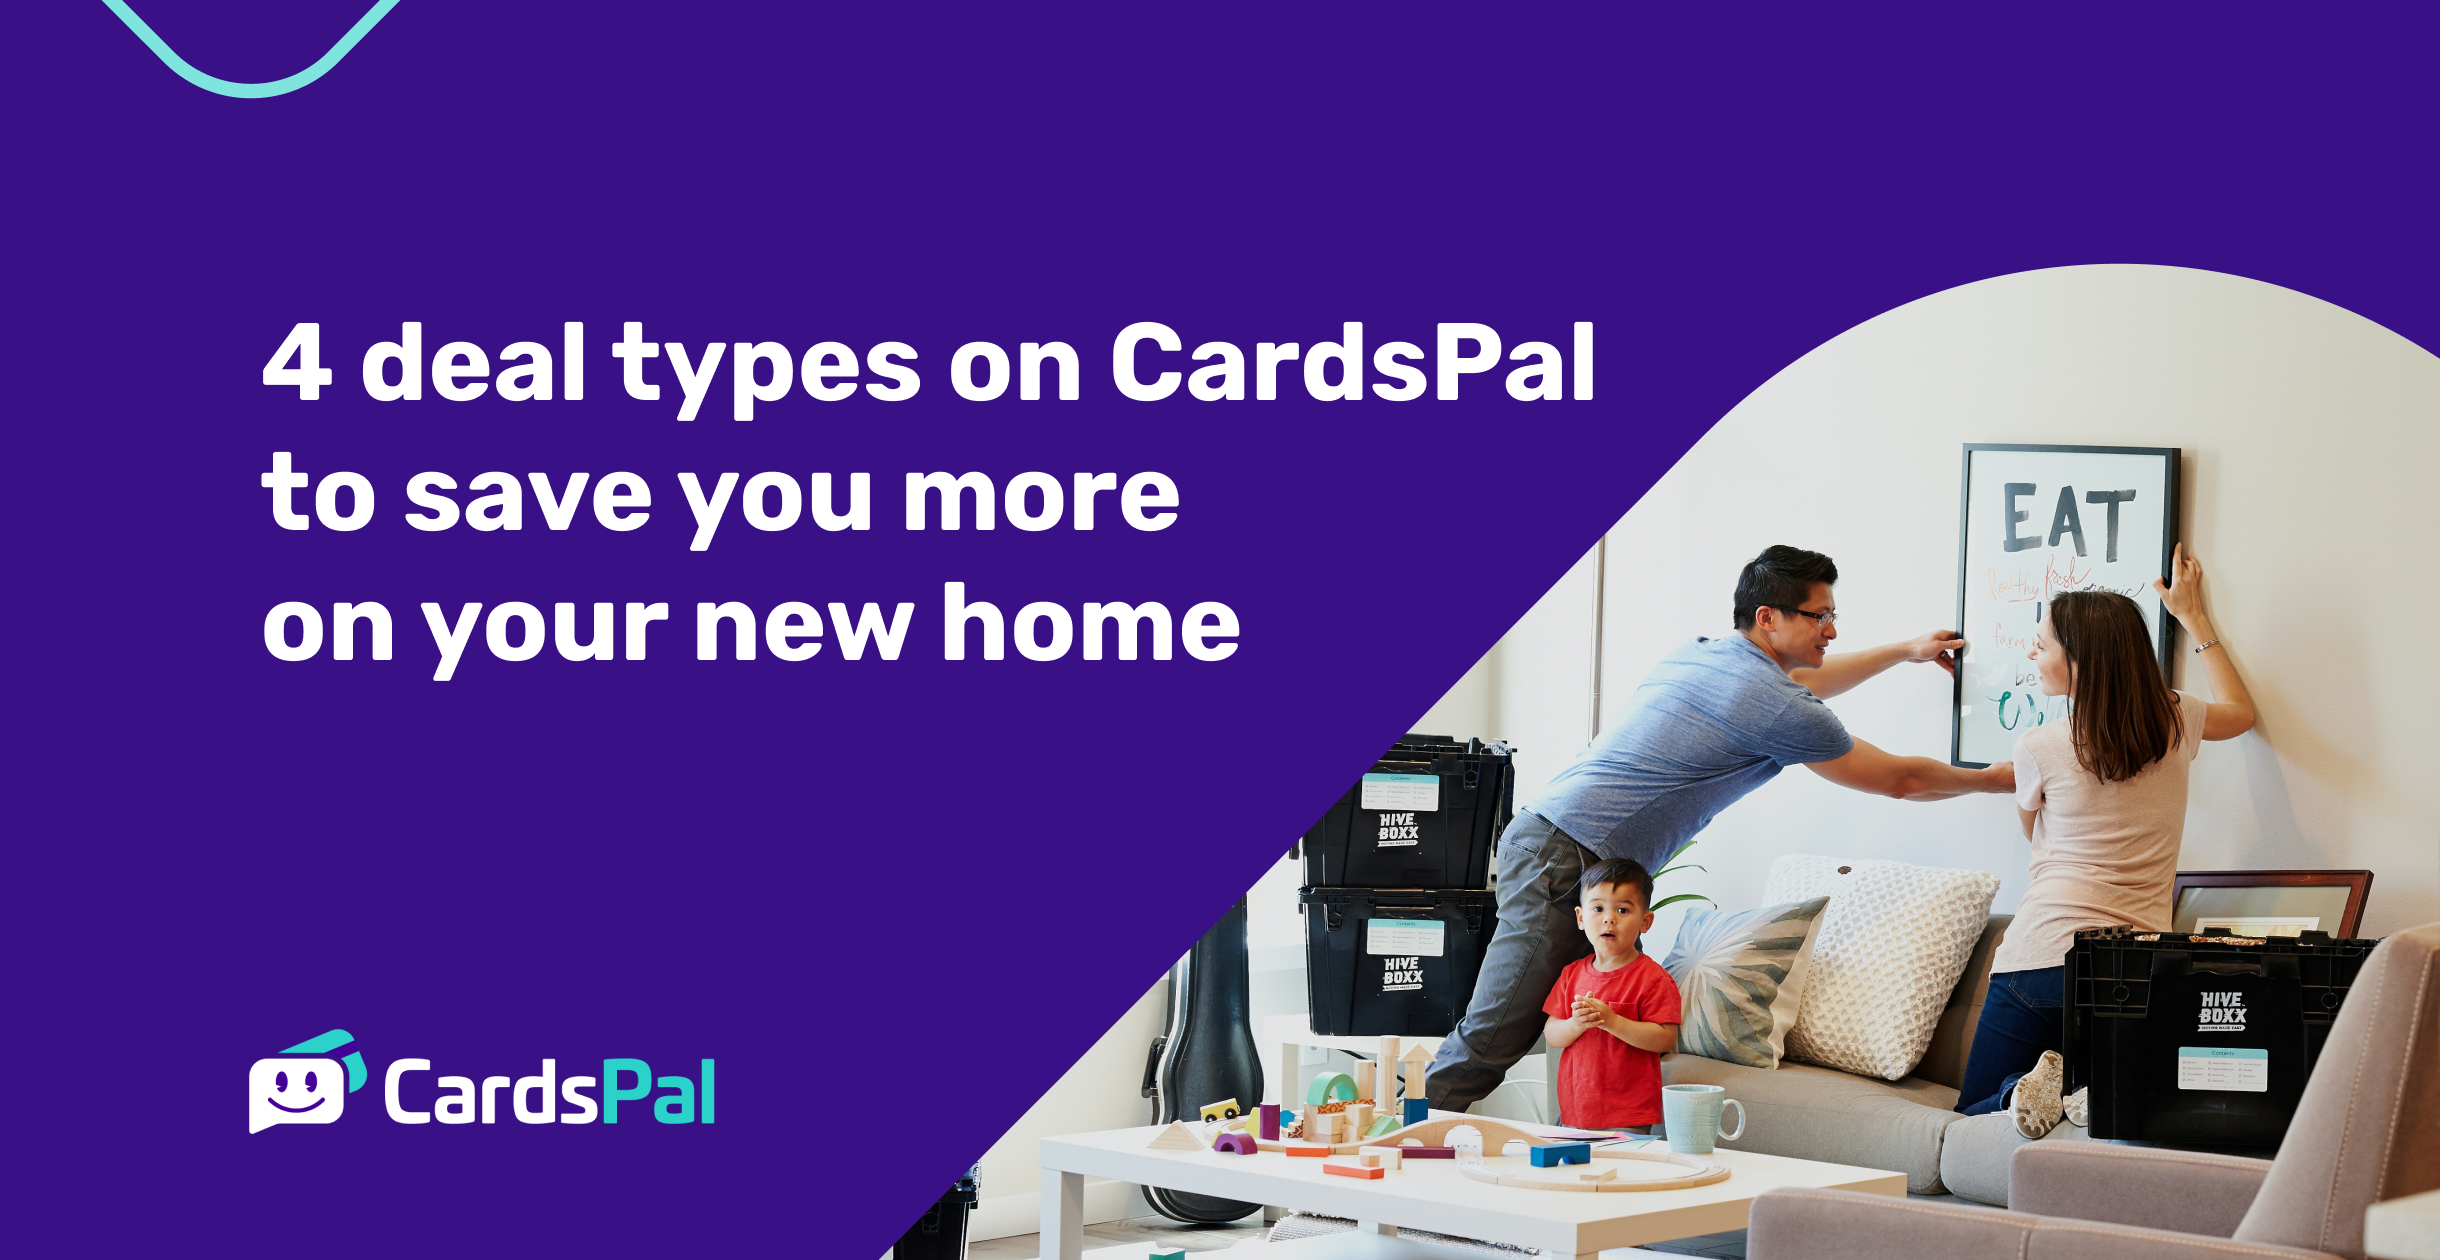 4 deal types on CardsPal to save you more on your new home